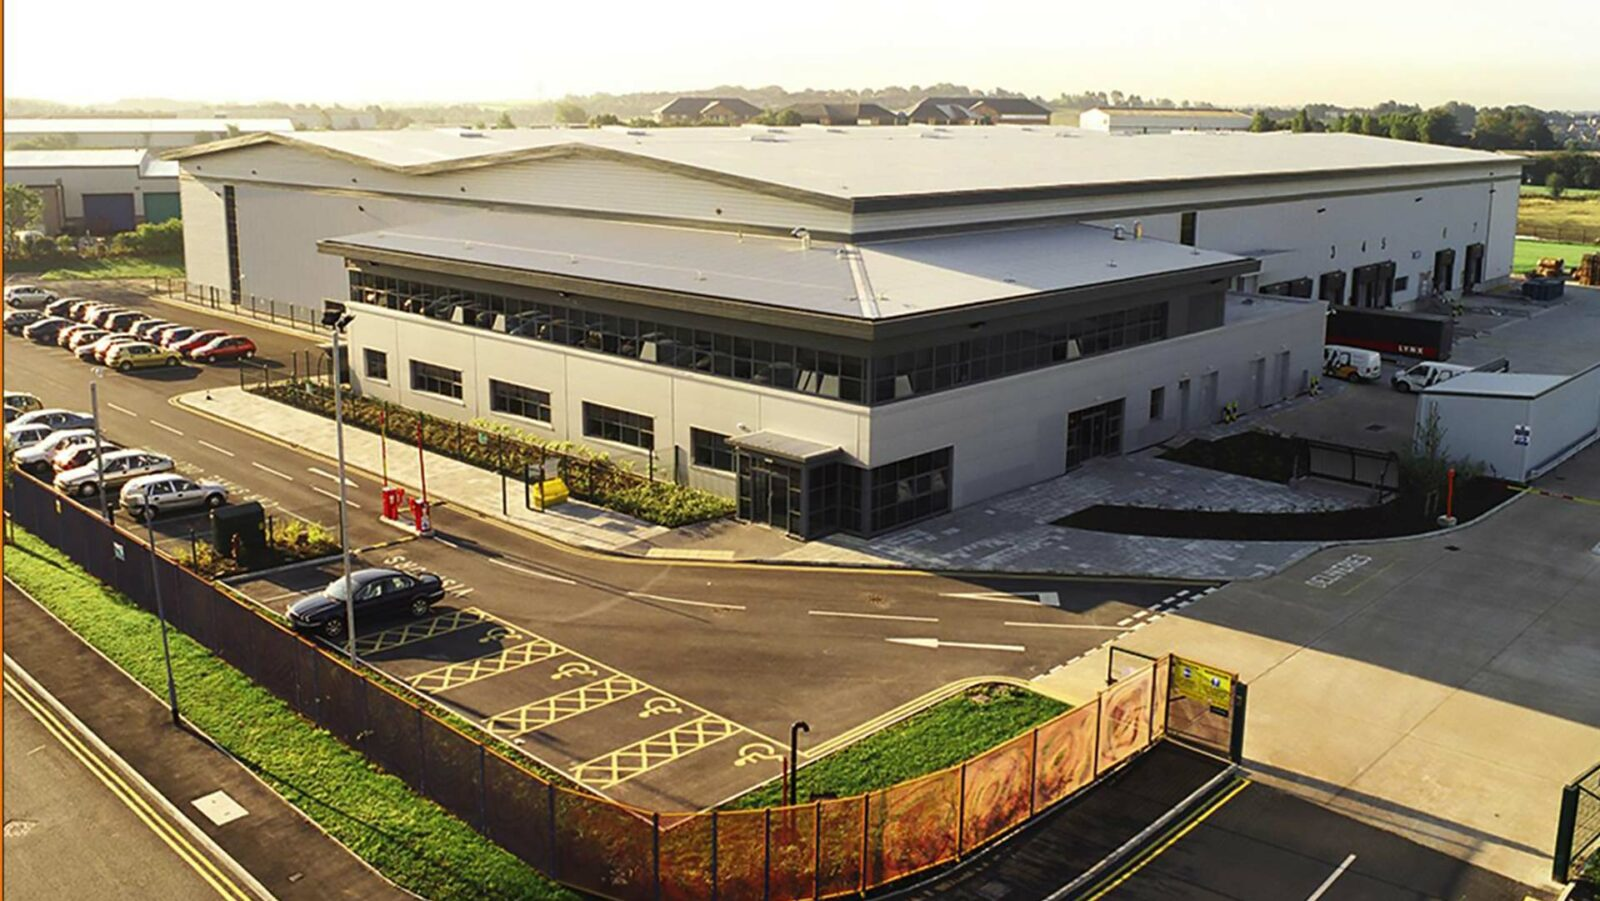 Bespoke distribution centre for L'Oreal